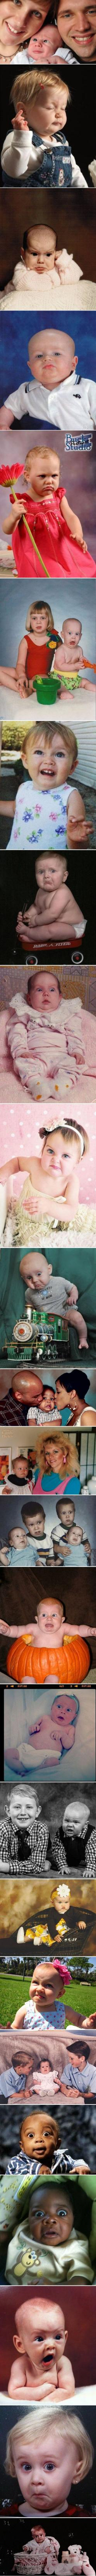 I'm dying: Wrong Time, Perfectly Wrong, Funny Kids Pictures Humor, Funny Stuff, Funny Baby Pictures, Funny Faces, Funny Babys, Funny Babies